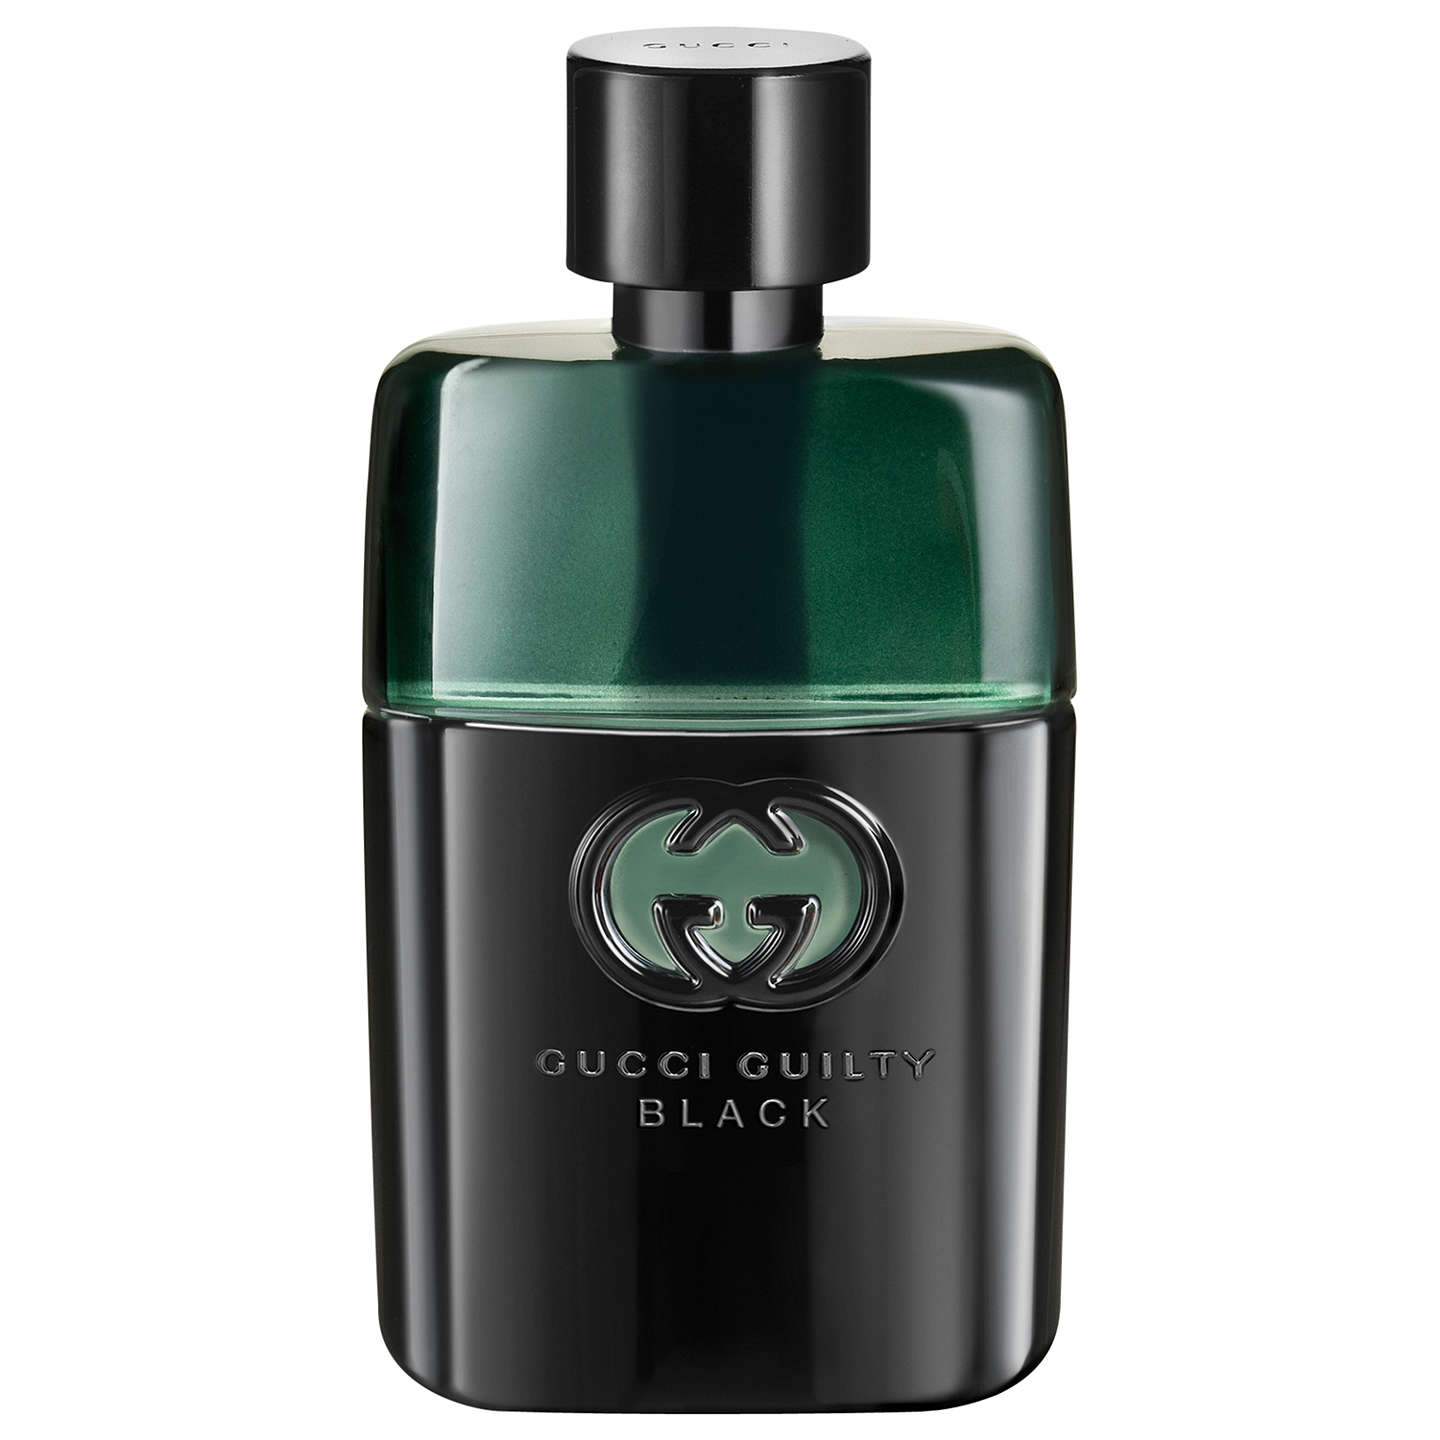 BuyGucci Guilty Black Pour Homme Eau de Toilette, 50ml Online at johnlewis.com